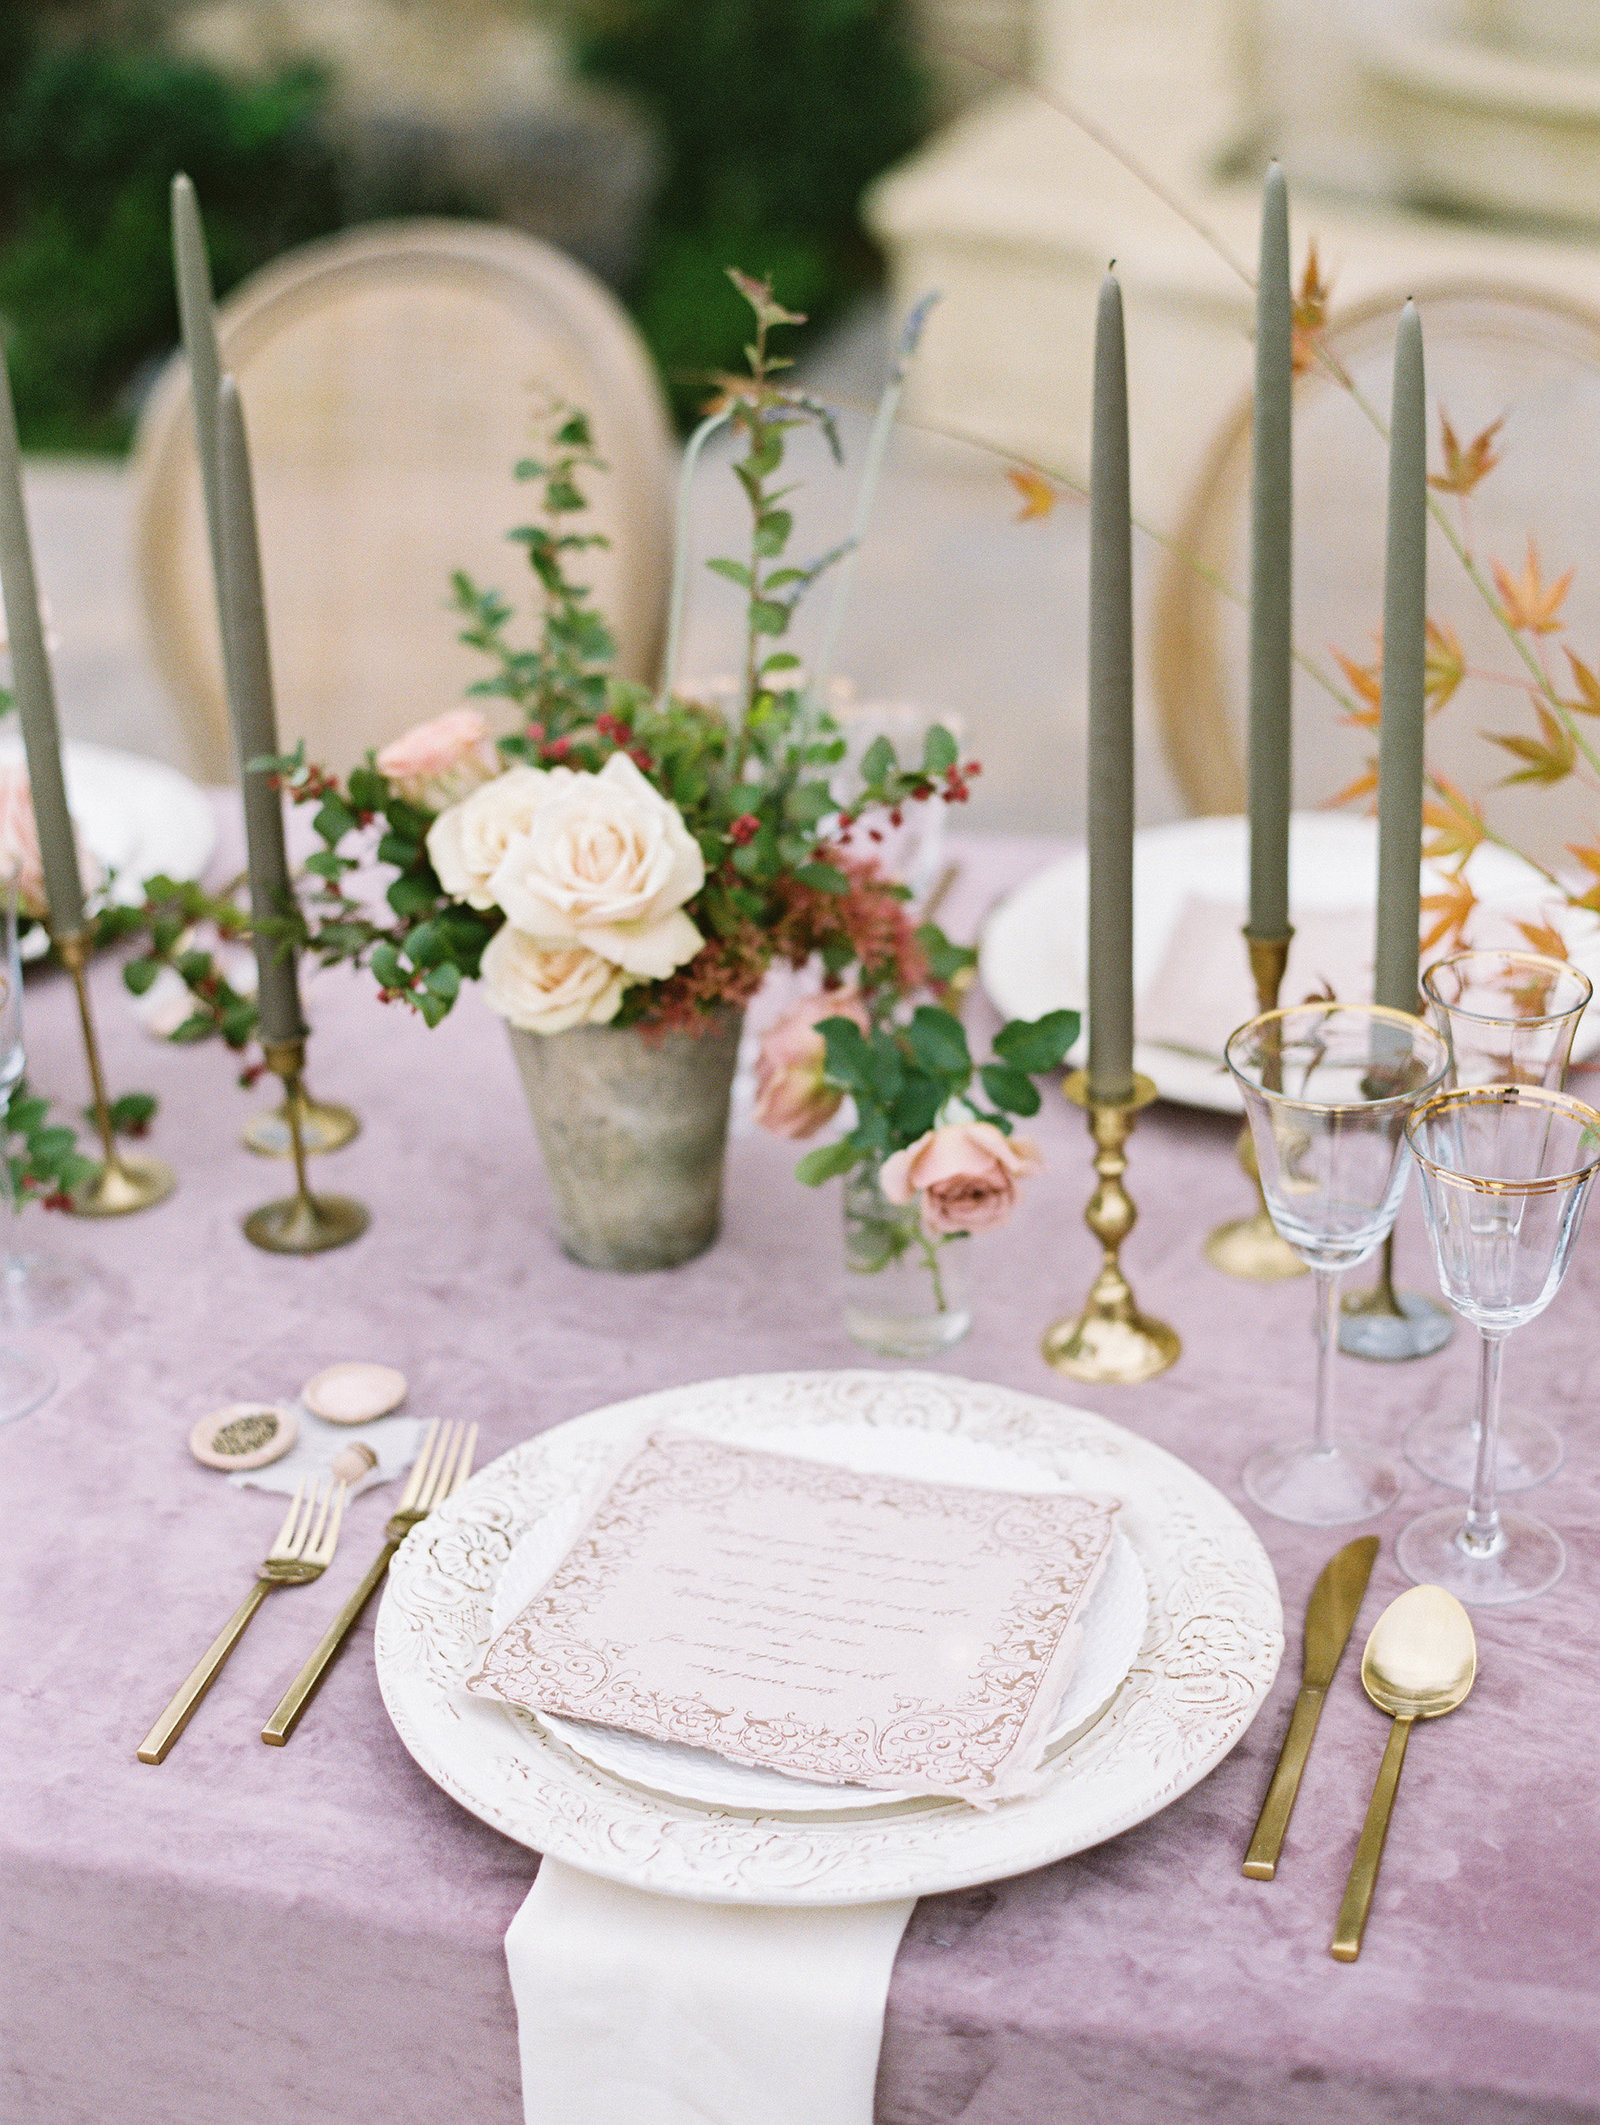 PuraSoulPhoto_MalibuRockyOaksWedding_TopBest_PurpleTable-22